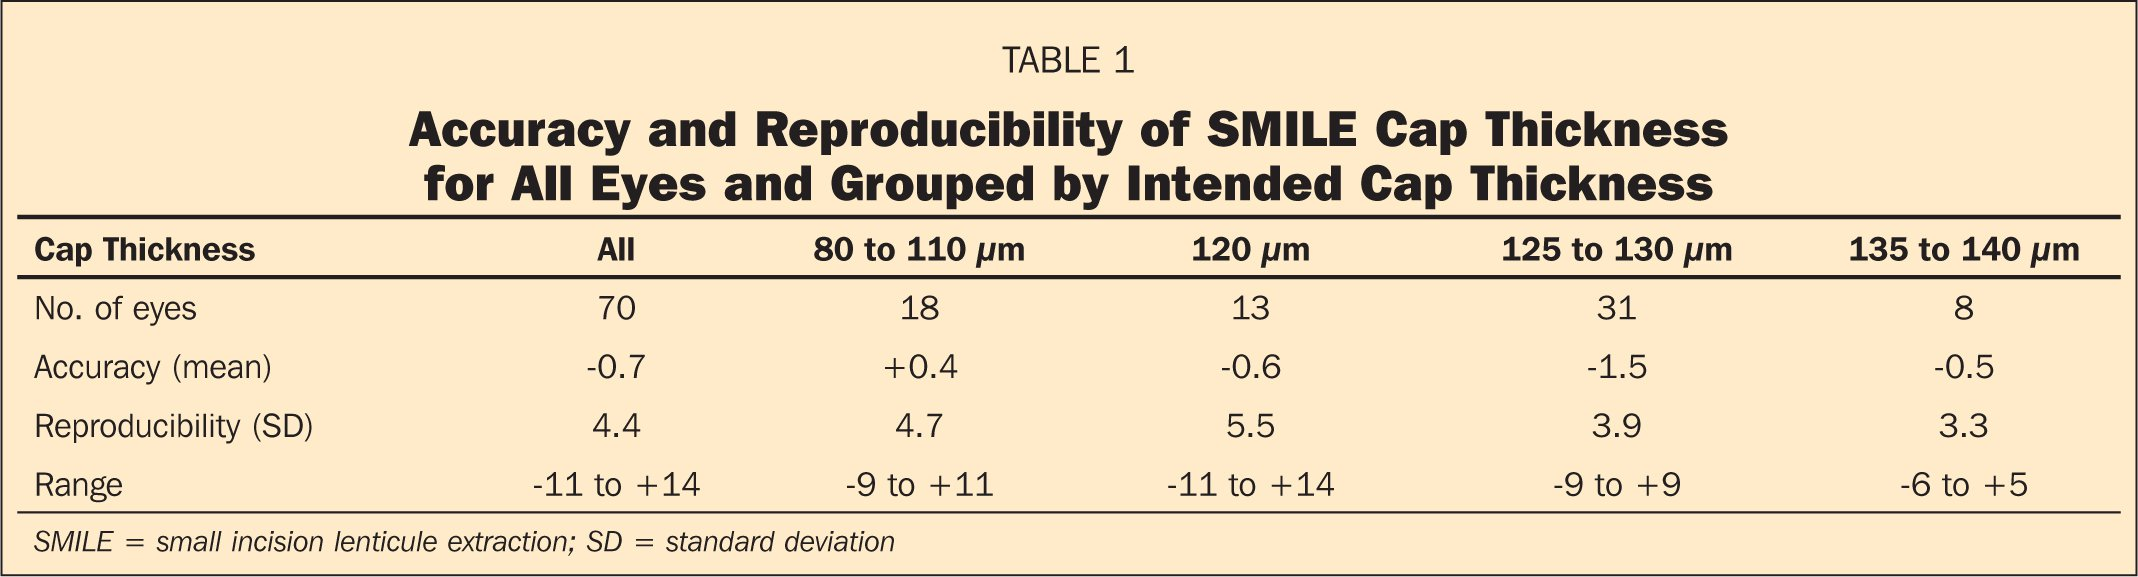 Accuracy and Reproducibility of SMILE Cap Thickness for All Eyes and Grouped by Intended Cap Thickness